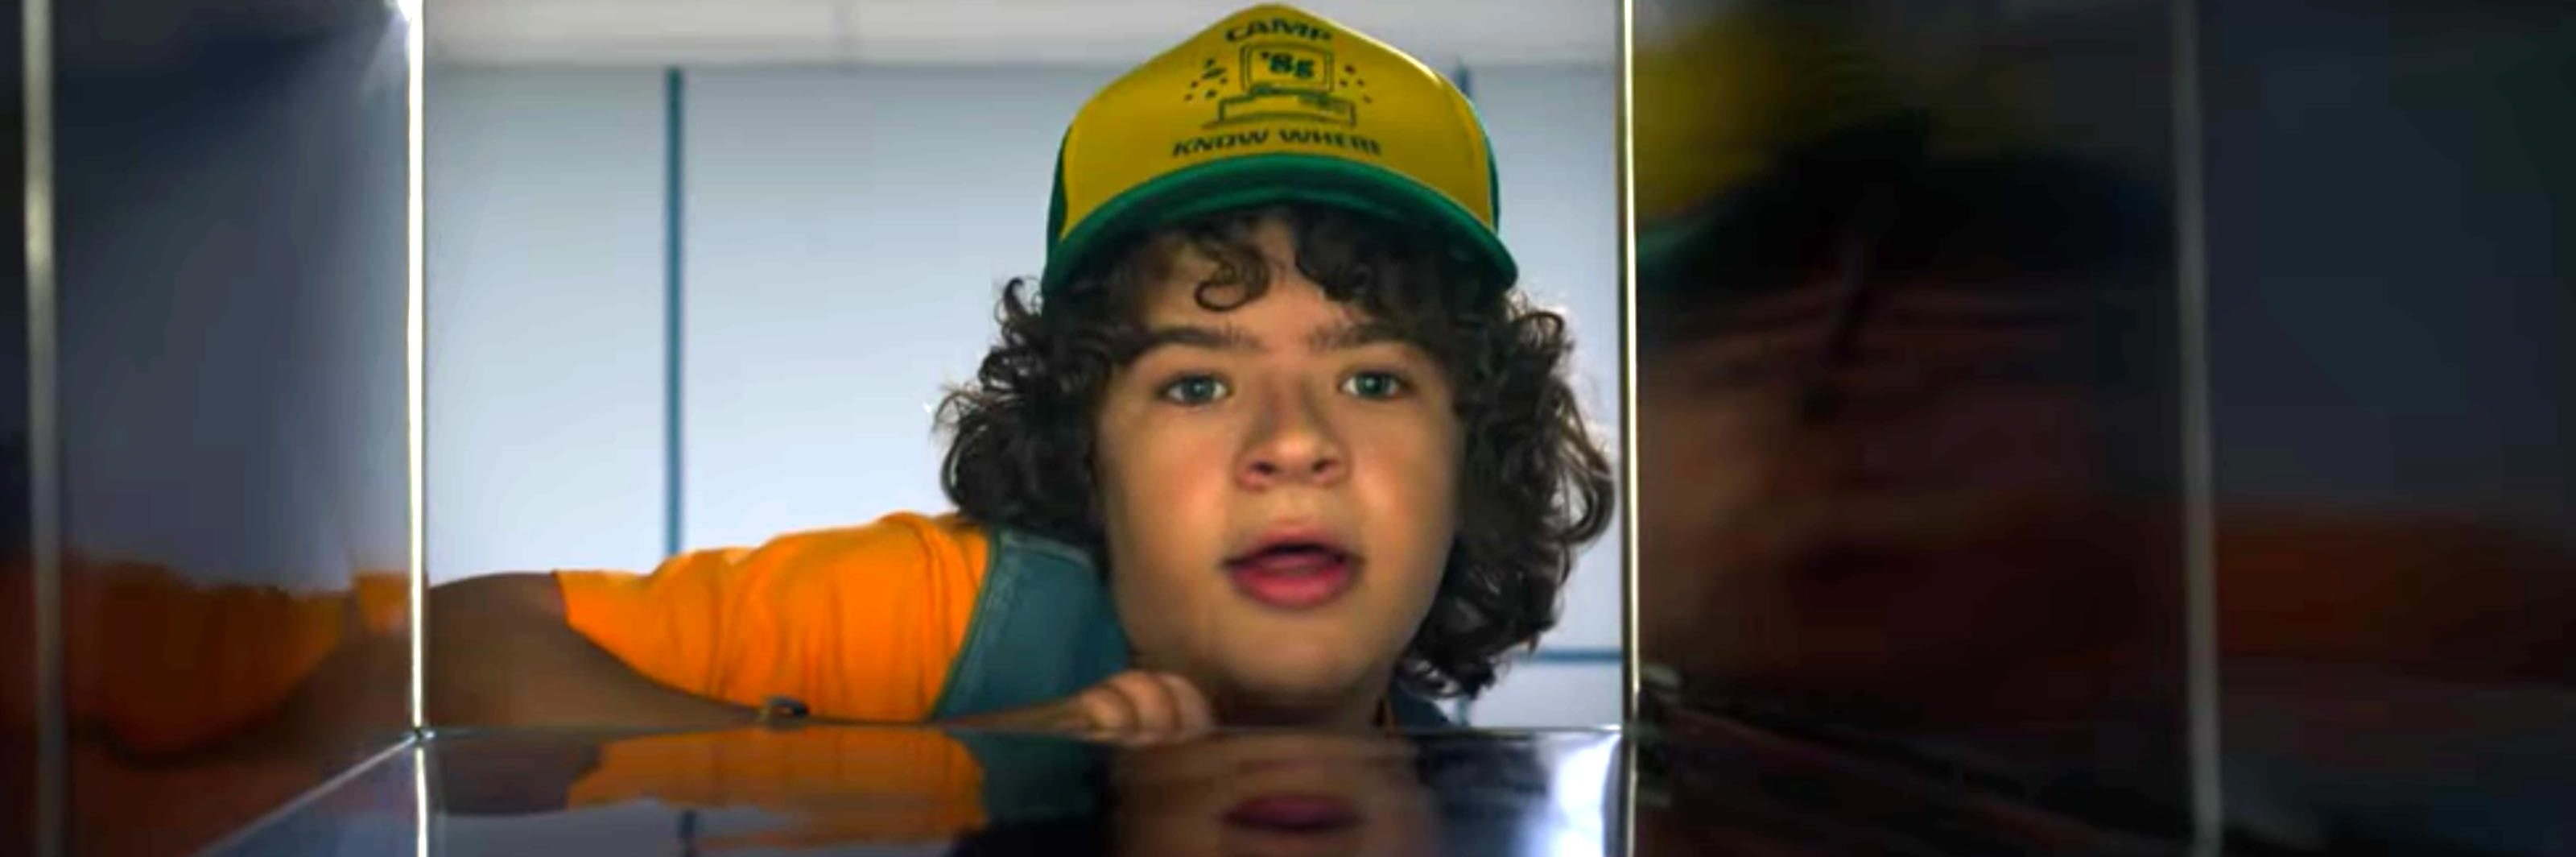 Dustin (Stranger Things Season 3)